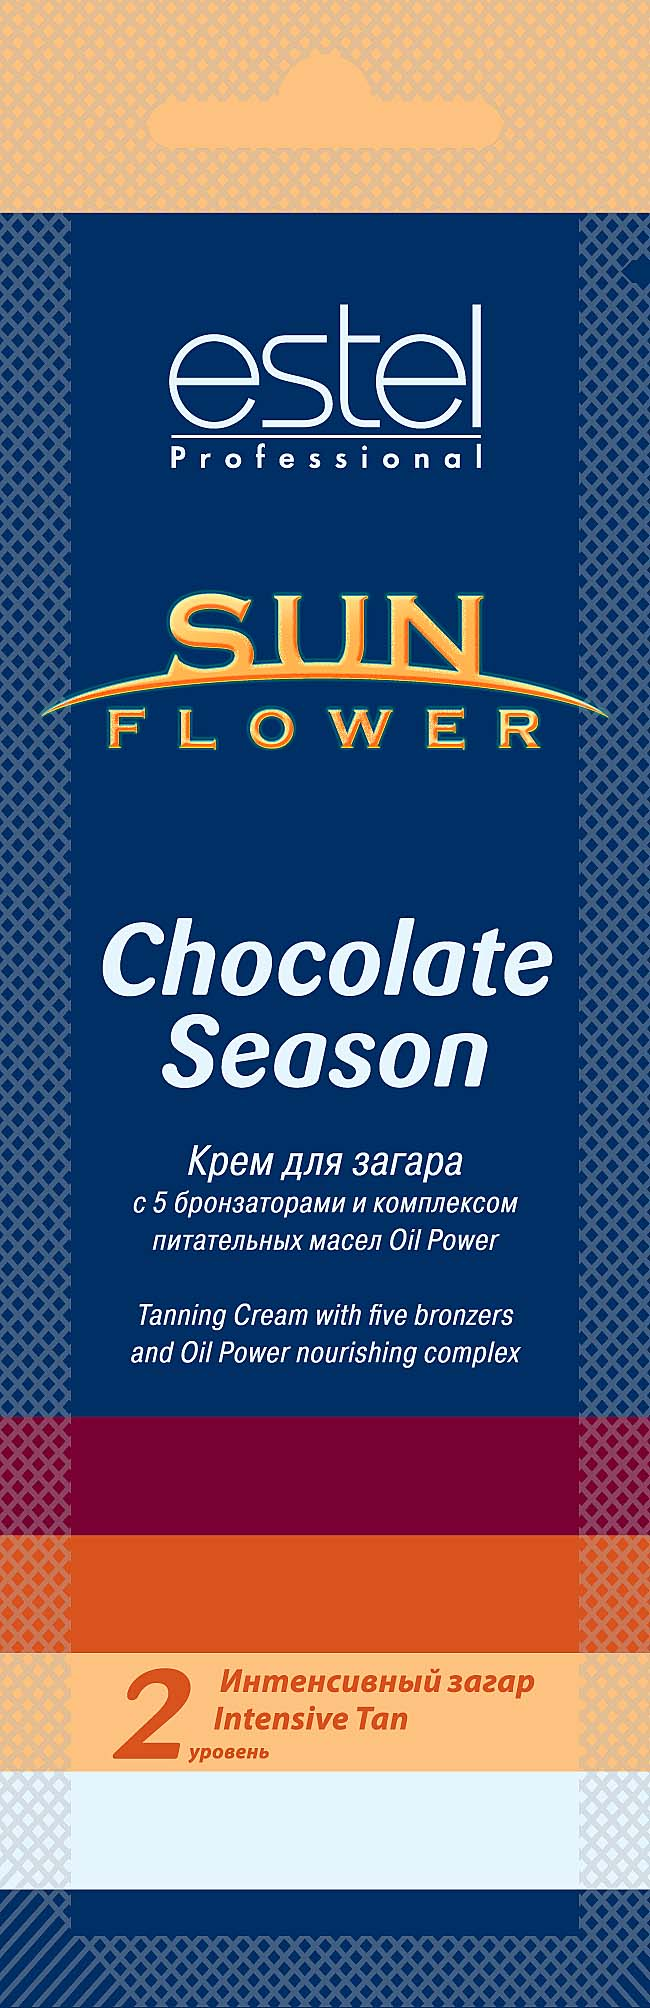 Крем для загара Chocolate Season с 5 бронзаторами